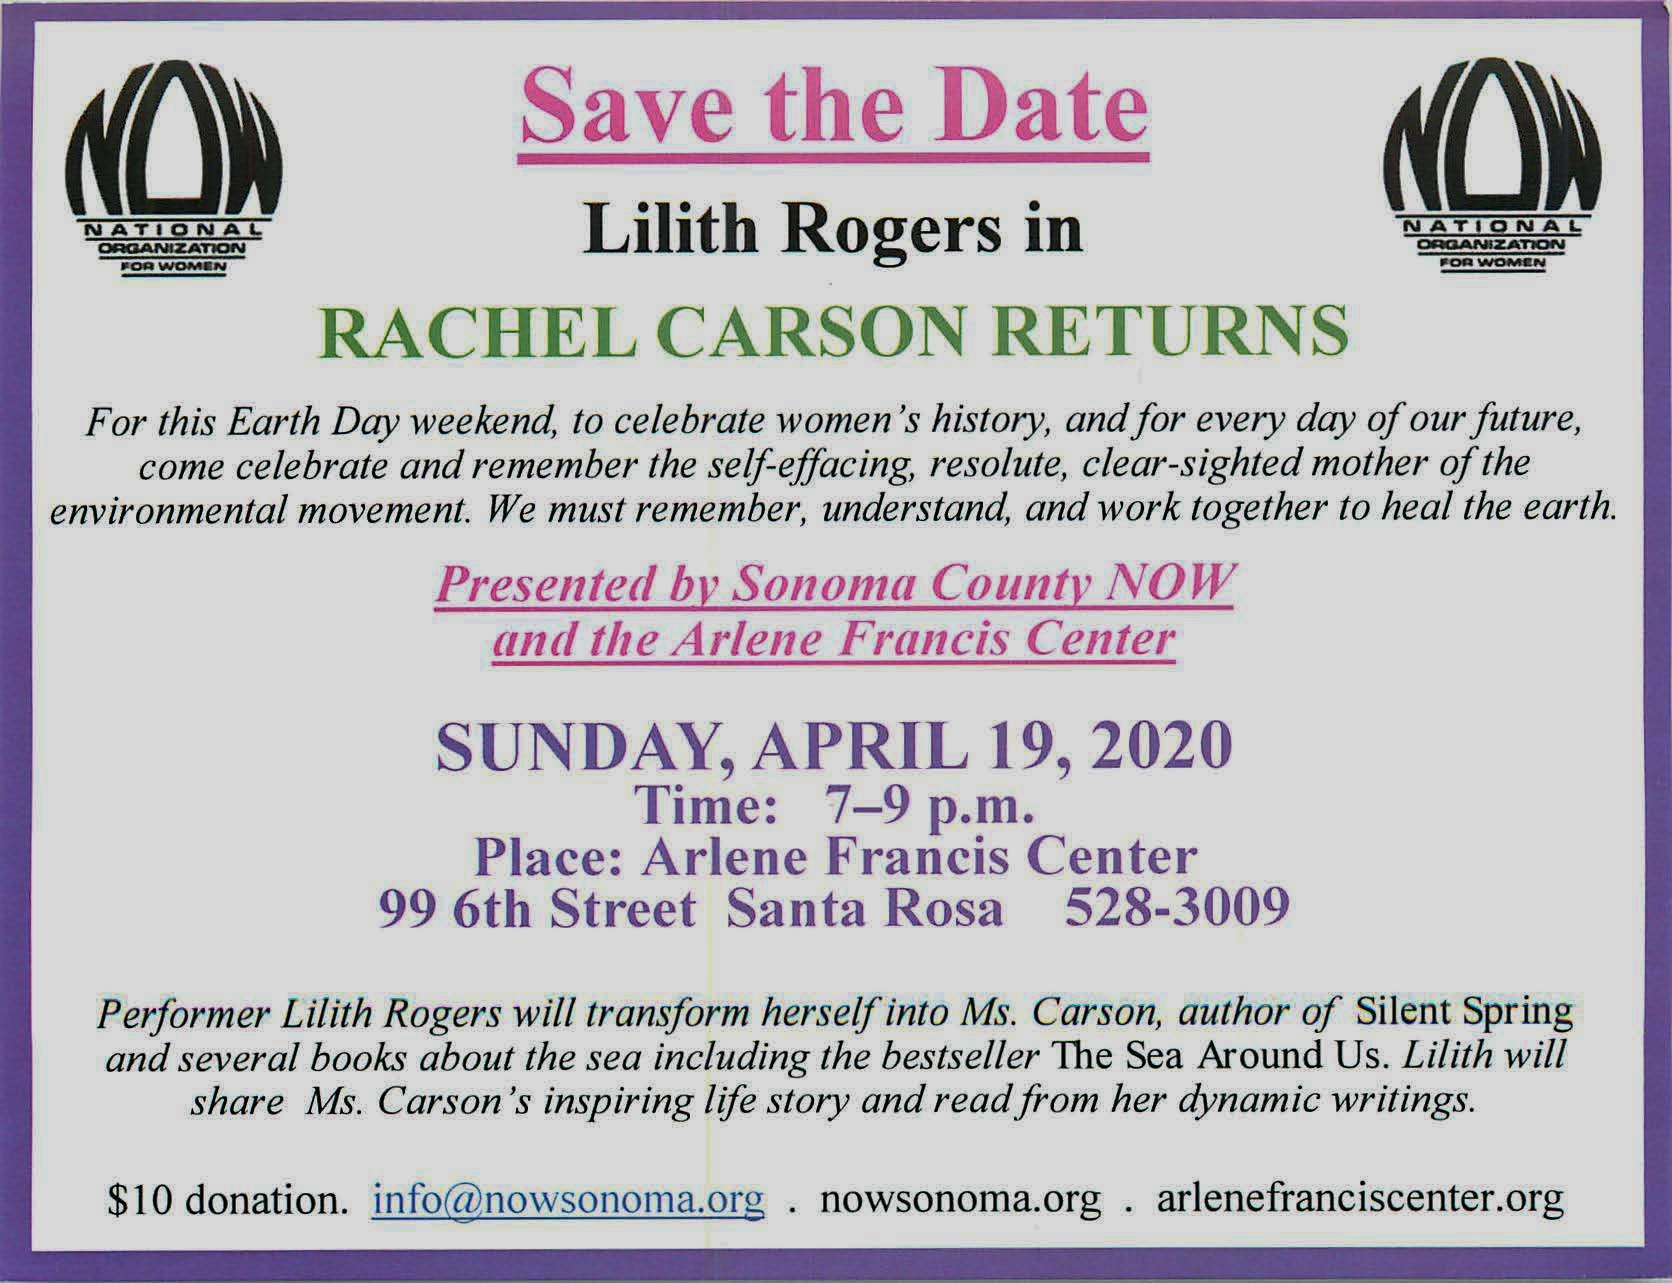 Rachel Carson Returns starring Lilith Rogers